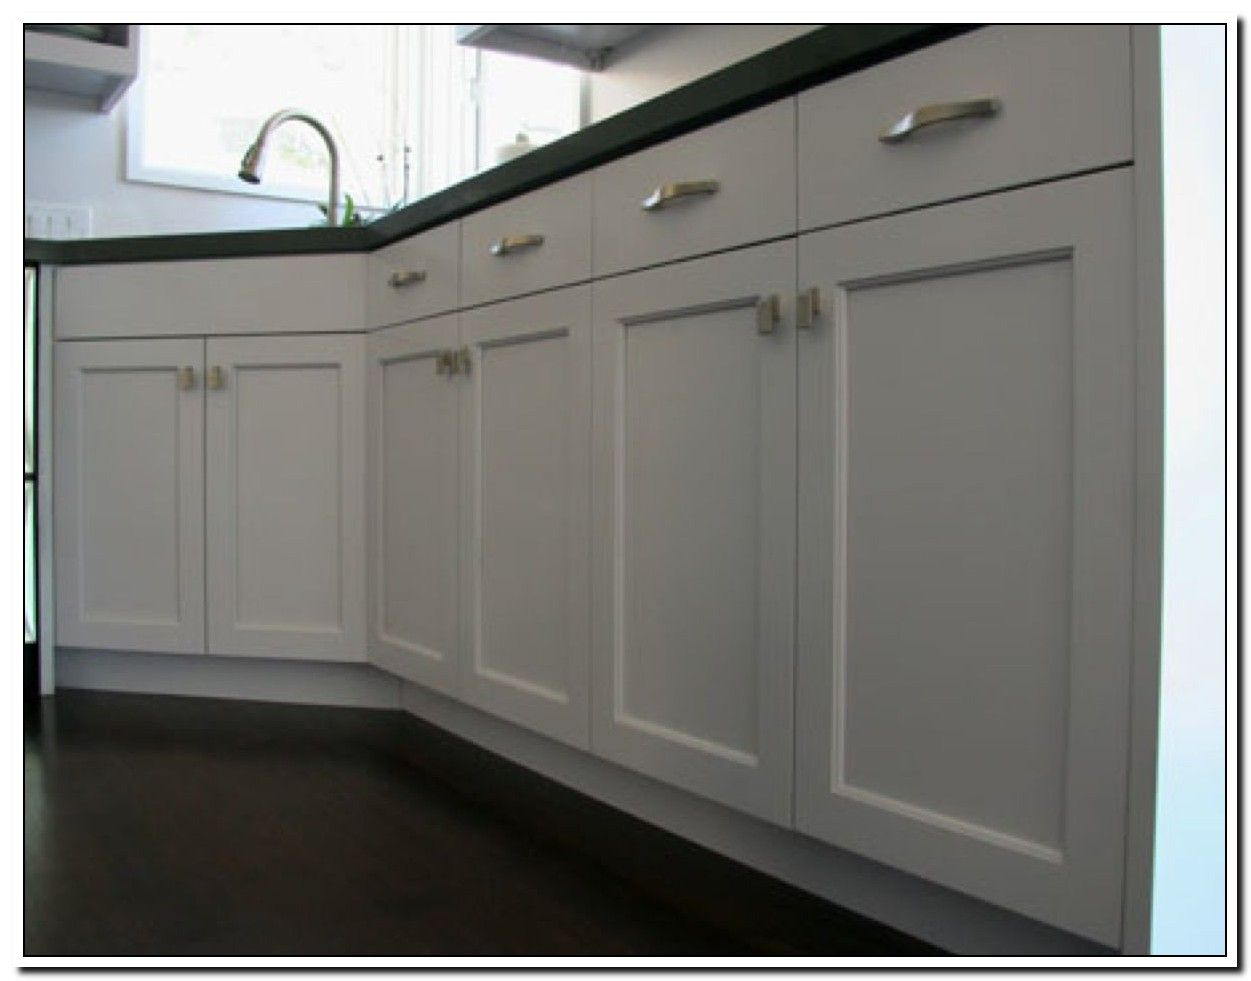 31 Reference Of New Kitchen Cabinet Doors And Drawer Fronts New Kitchen Cabinet Doors Cheap Kitchen Cabinets Kitchen Renovation